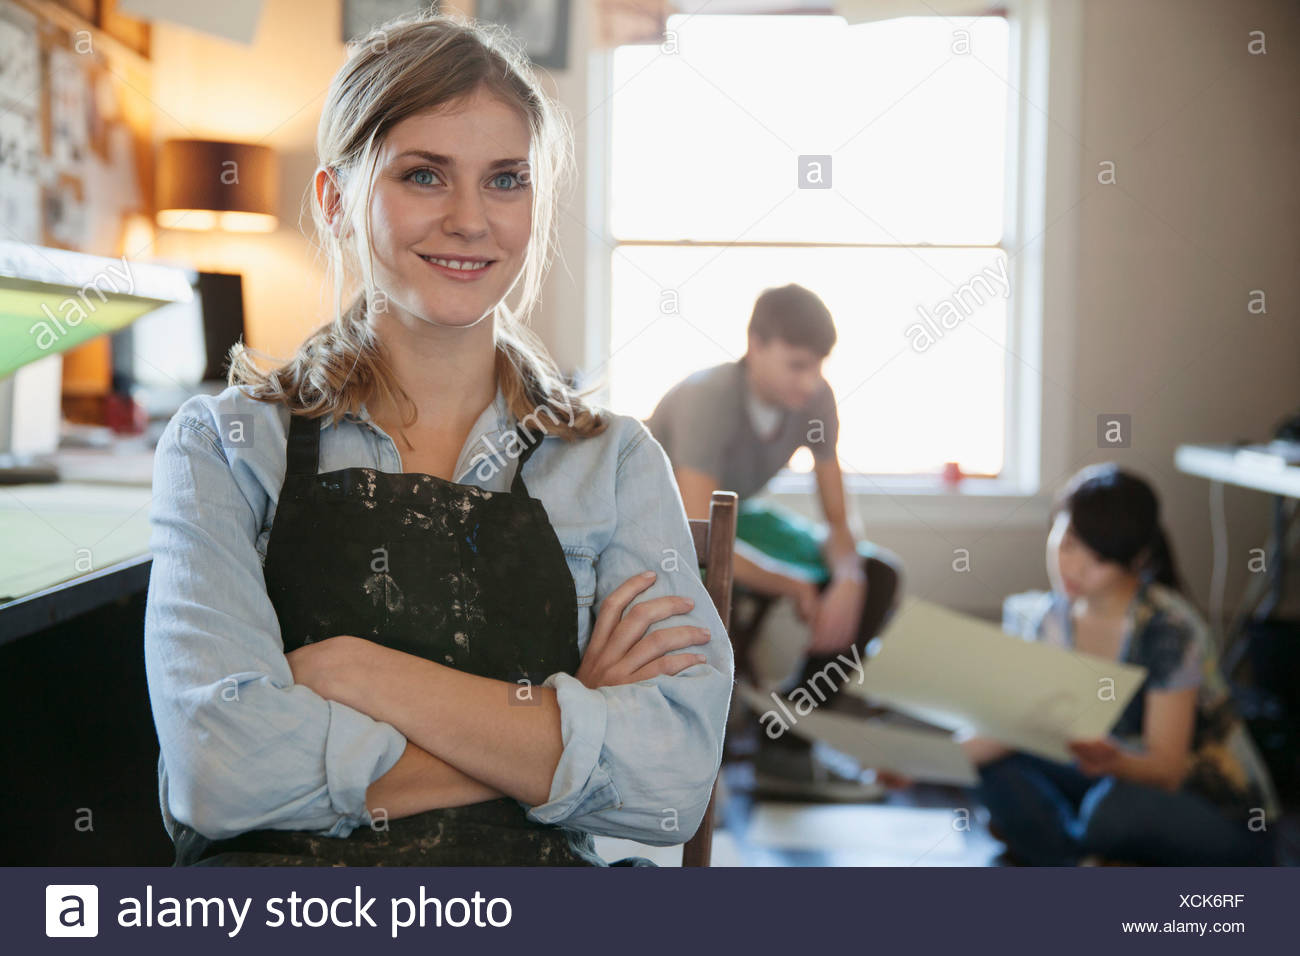 Confident female design professional looking away with colleagues in background at workshop - Stock Image